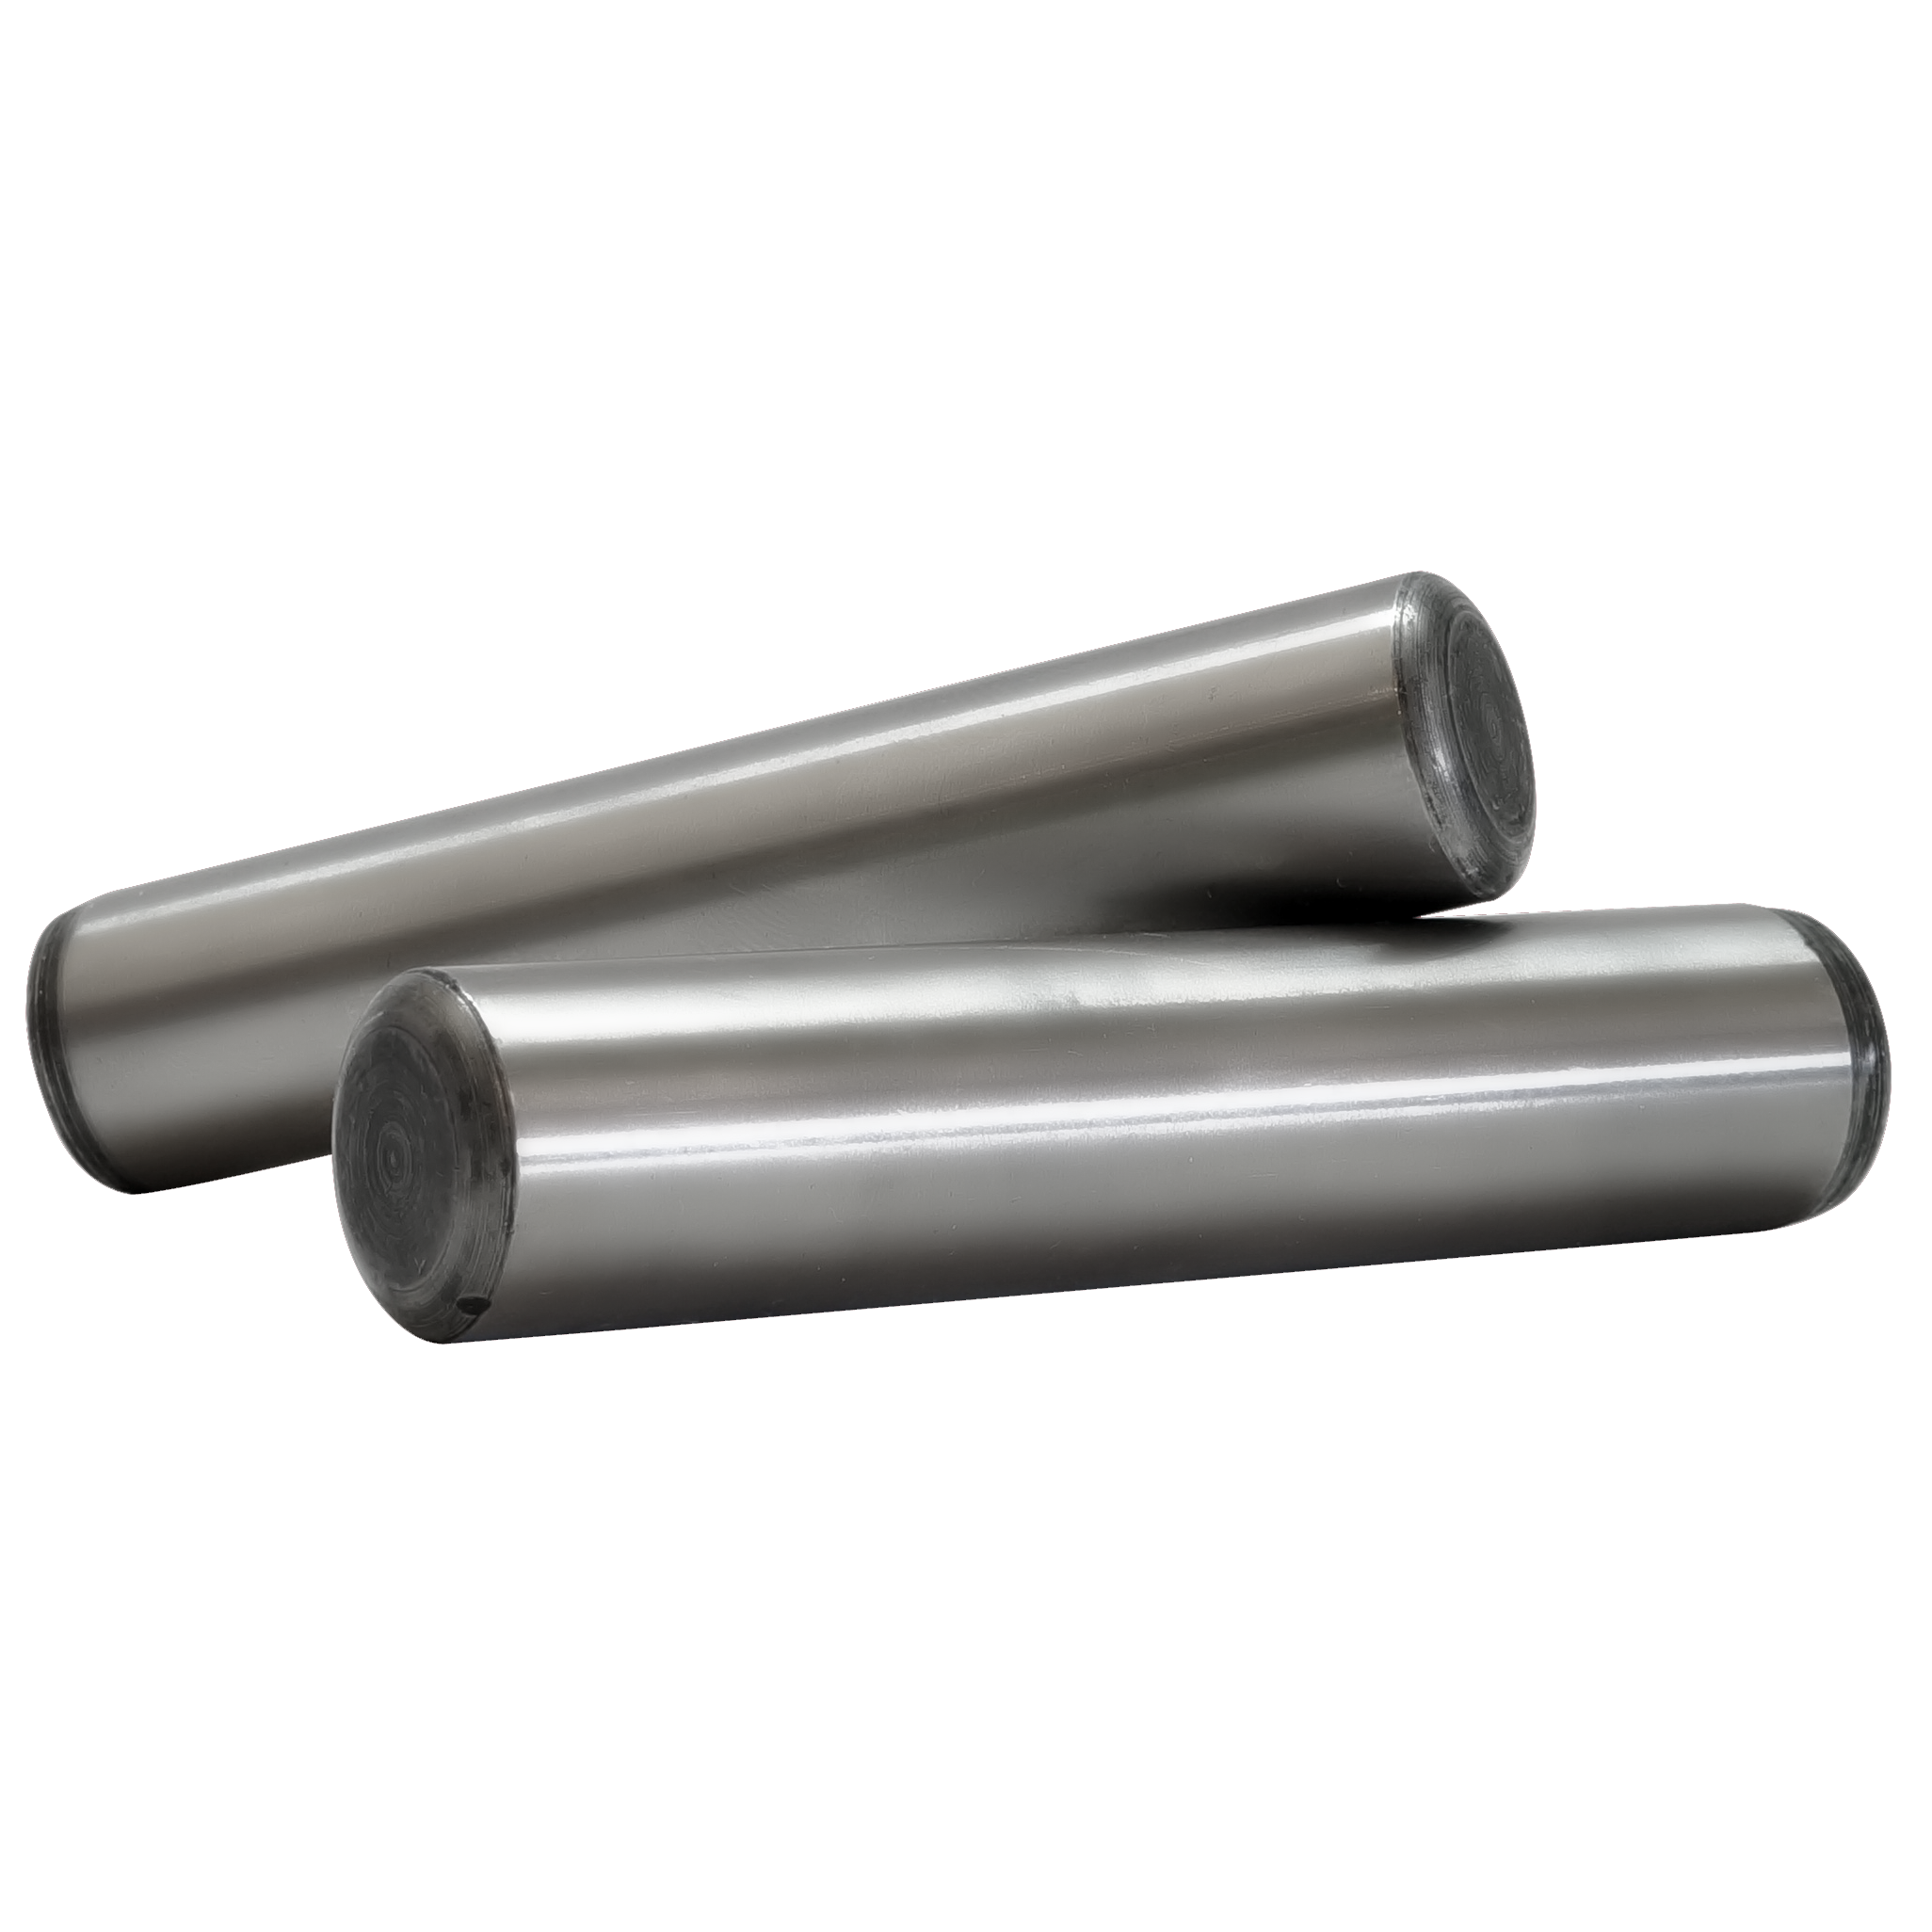 "1/2x3 1/2 ASME B18.8.2 Alloy Steel Dowel Pin Hardened Ground 0.0002"" Over Sized  (Unbrako)"